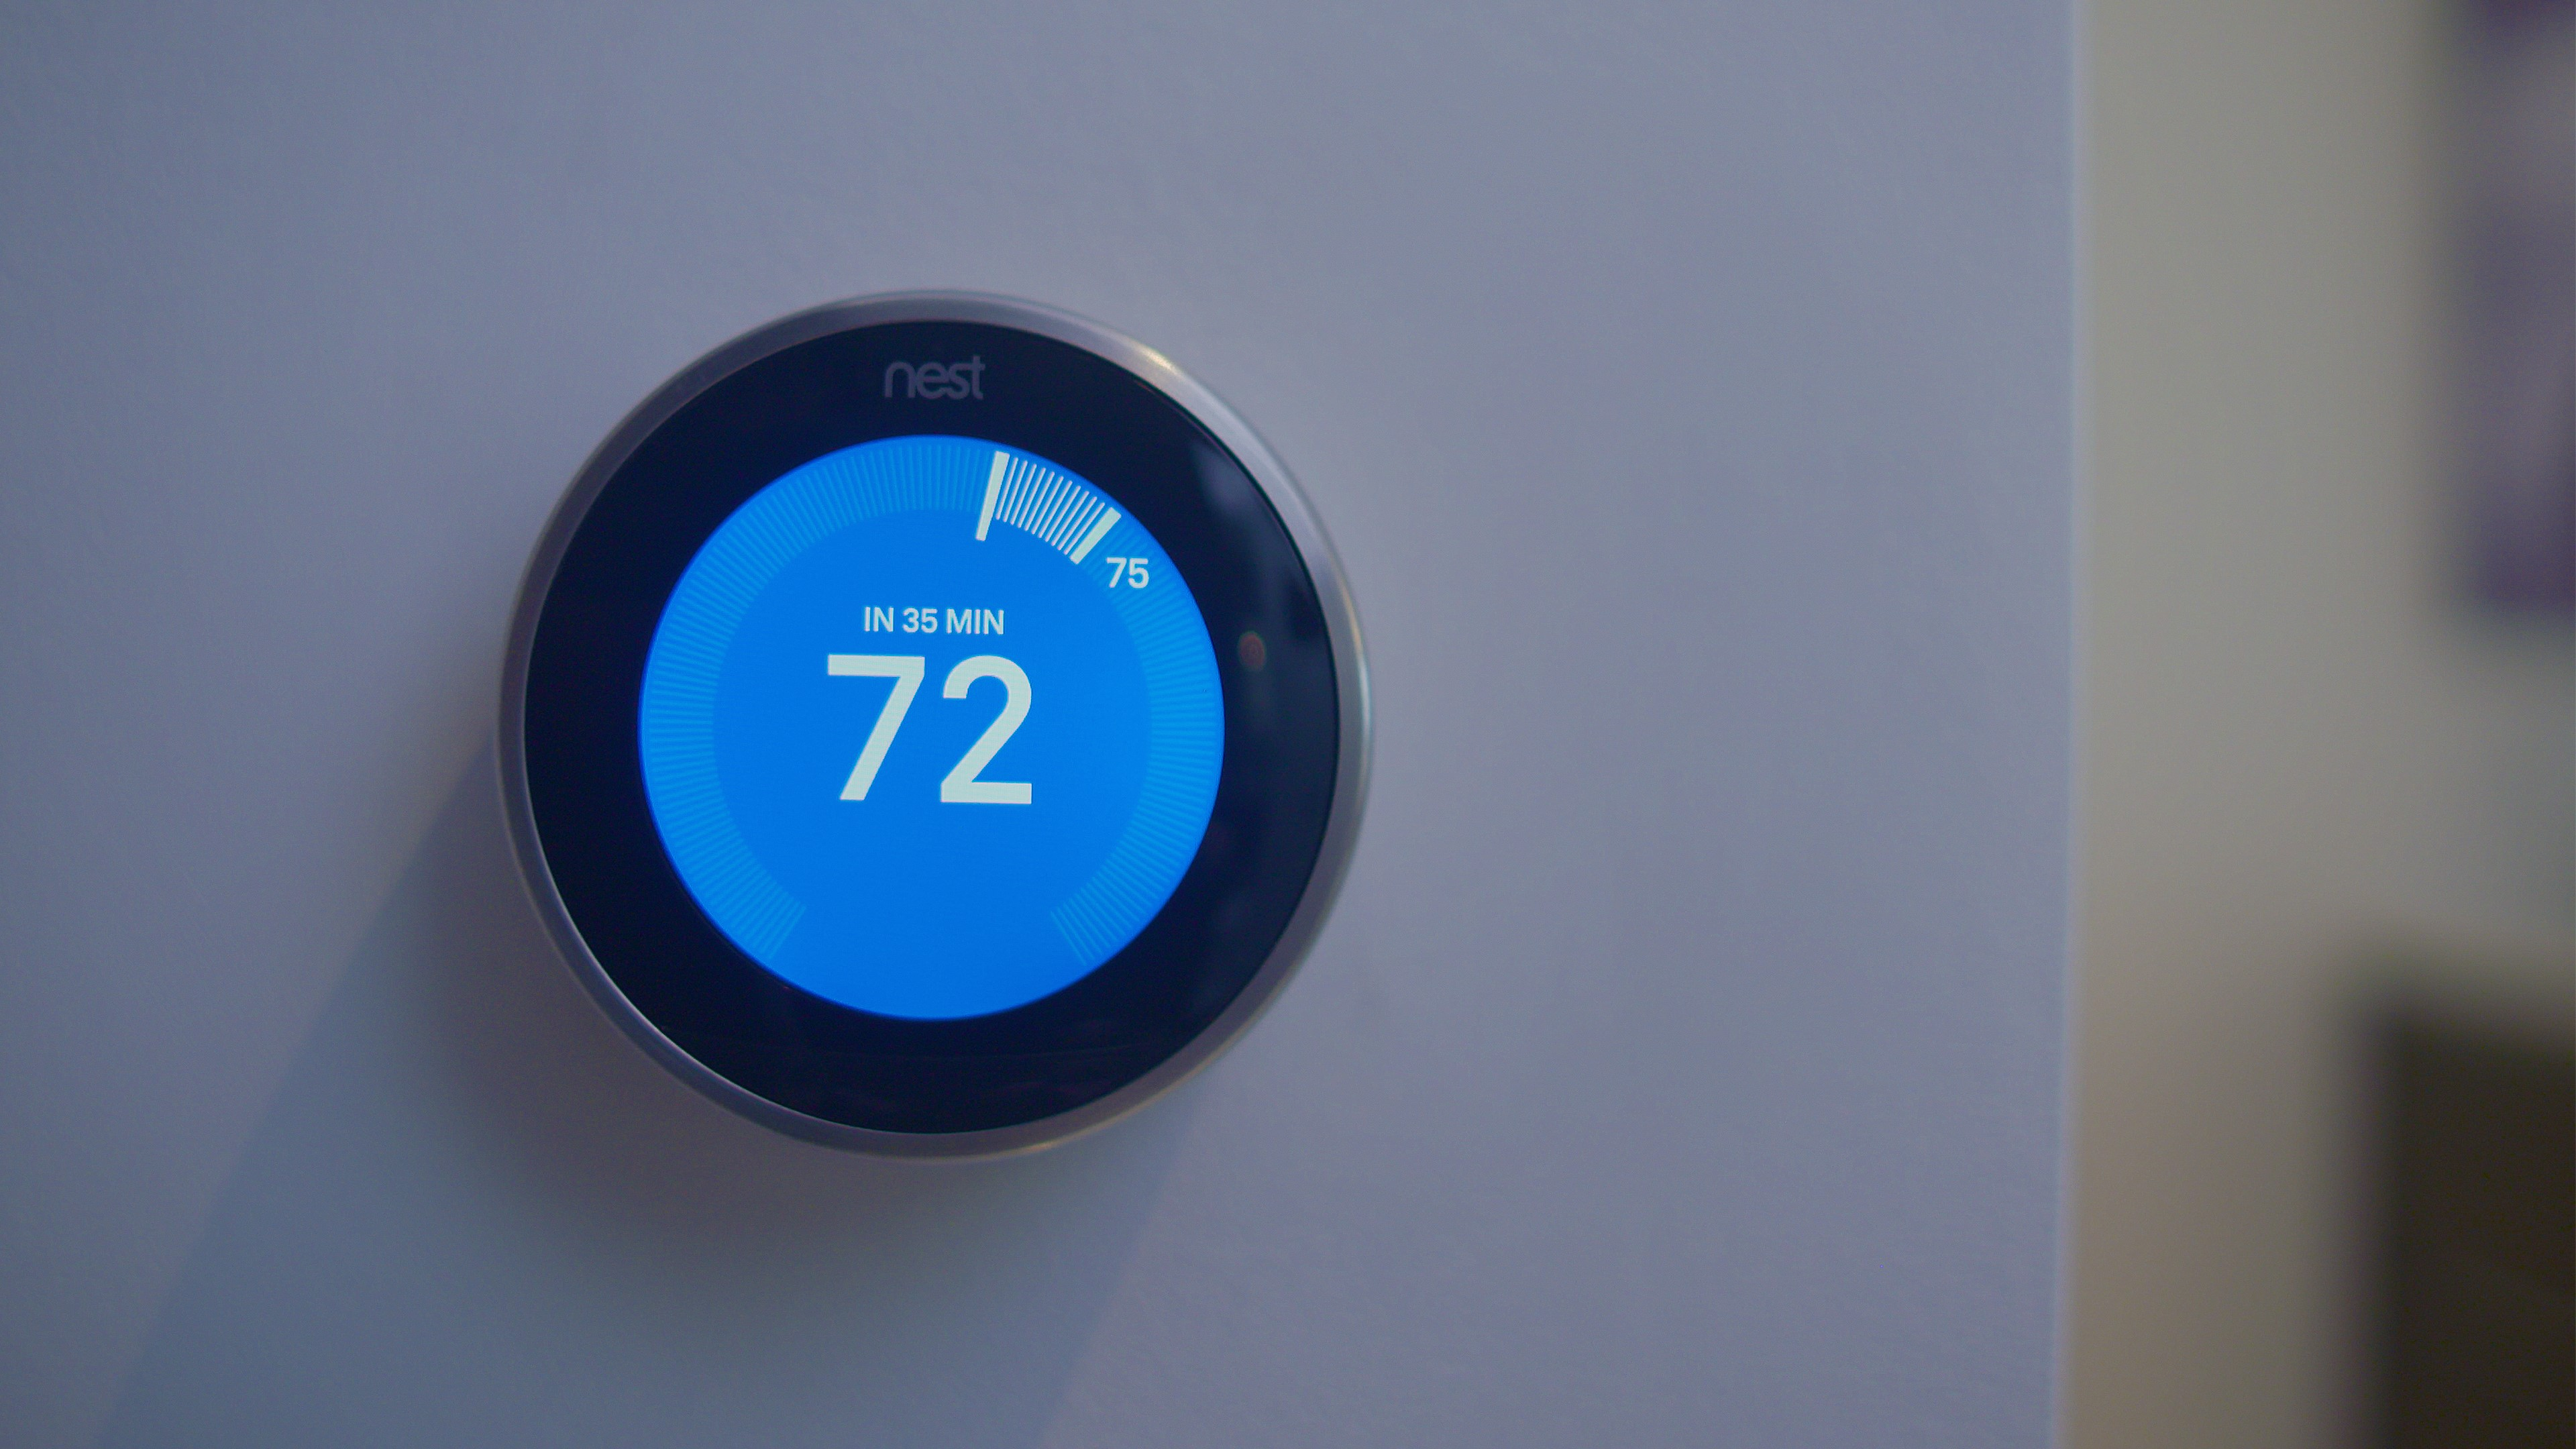 Awe Inspiring Nest Continues Fine Tuning Its Smart Home Technology Download Free Architecture Designs Scobabritishbridgeorg